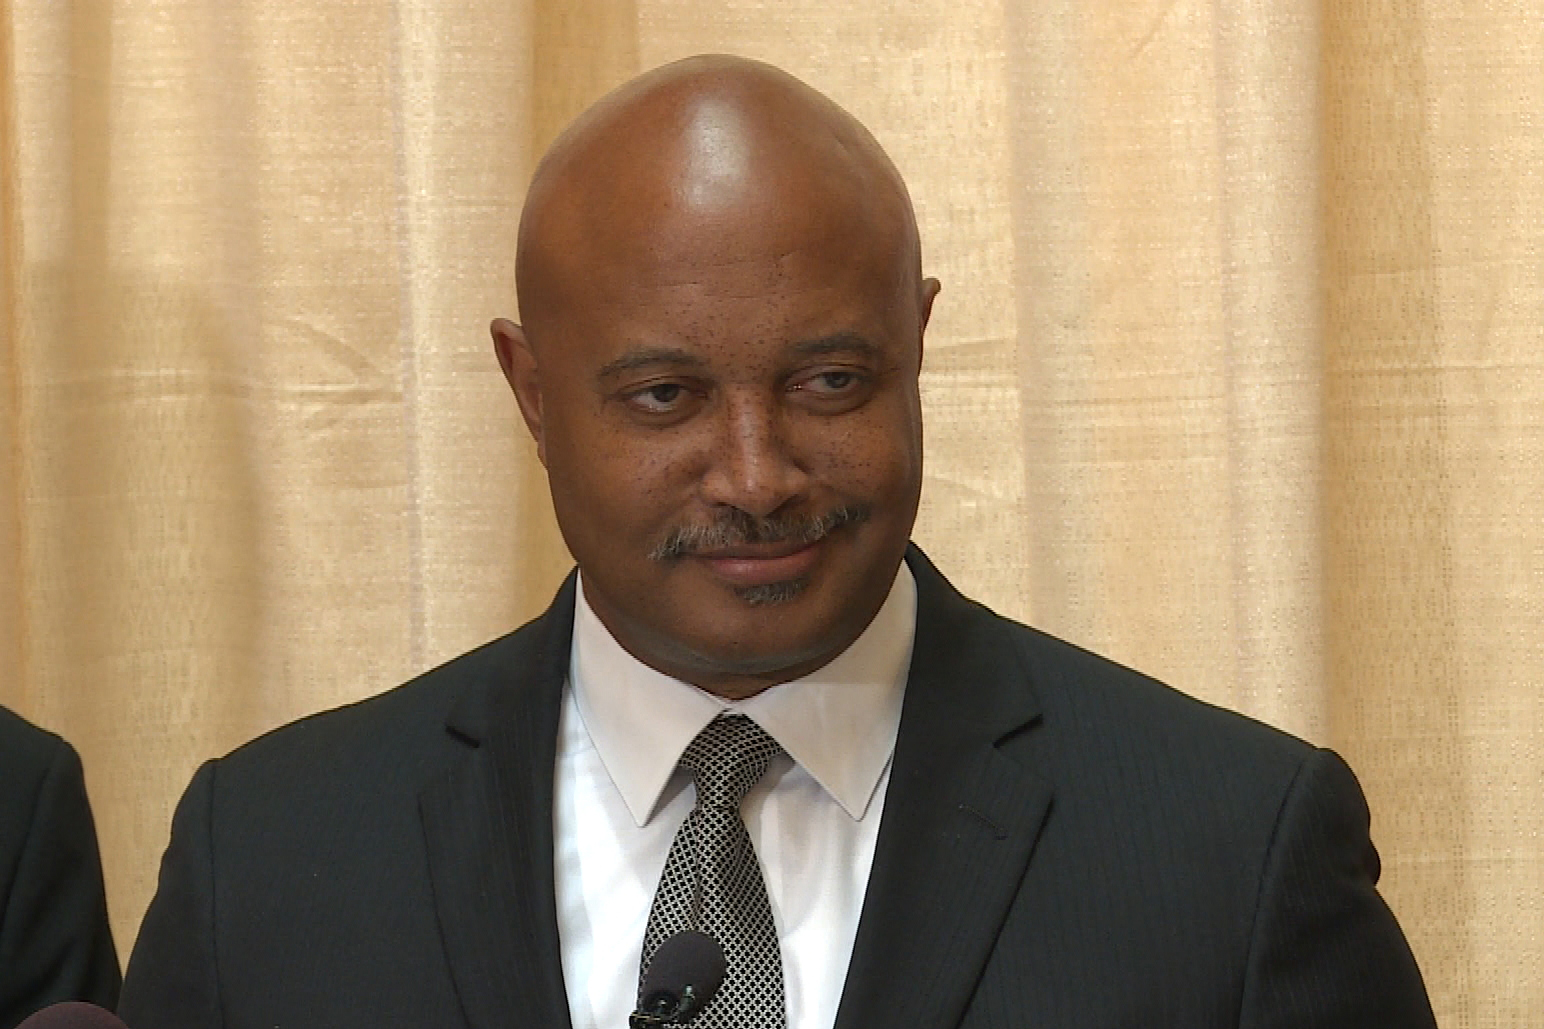 Curtis Hill was the longtime Elkhart County prosecutor before easily winning election in 2016 as attorney general.